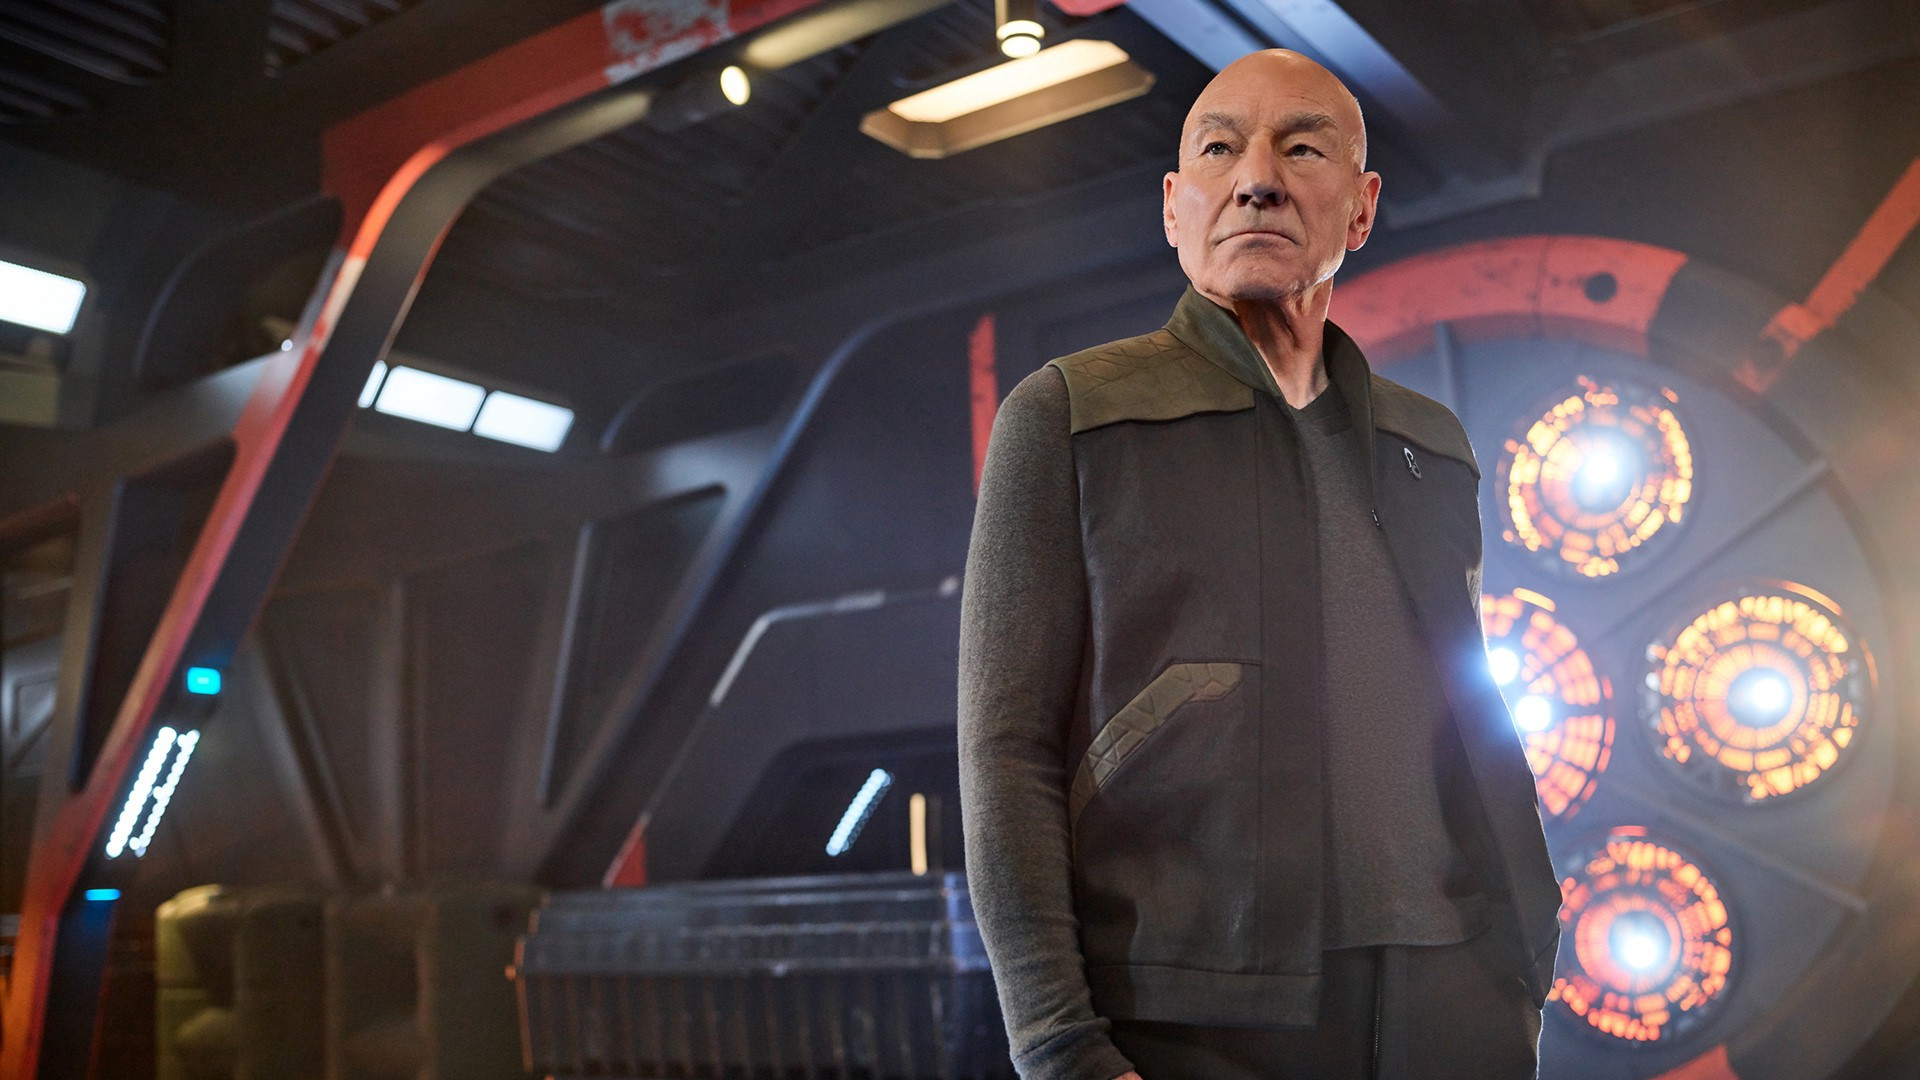 Star Trek Picard Season 1